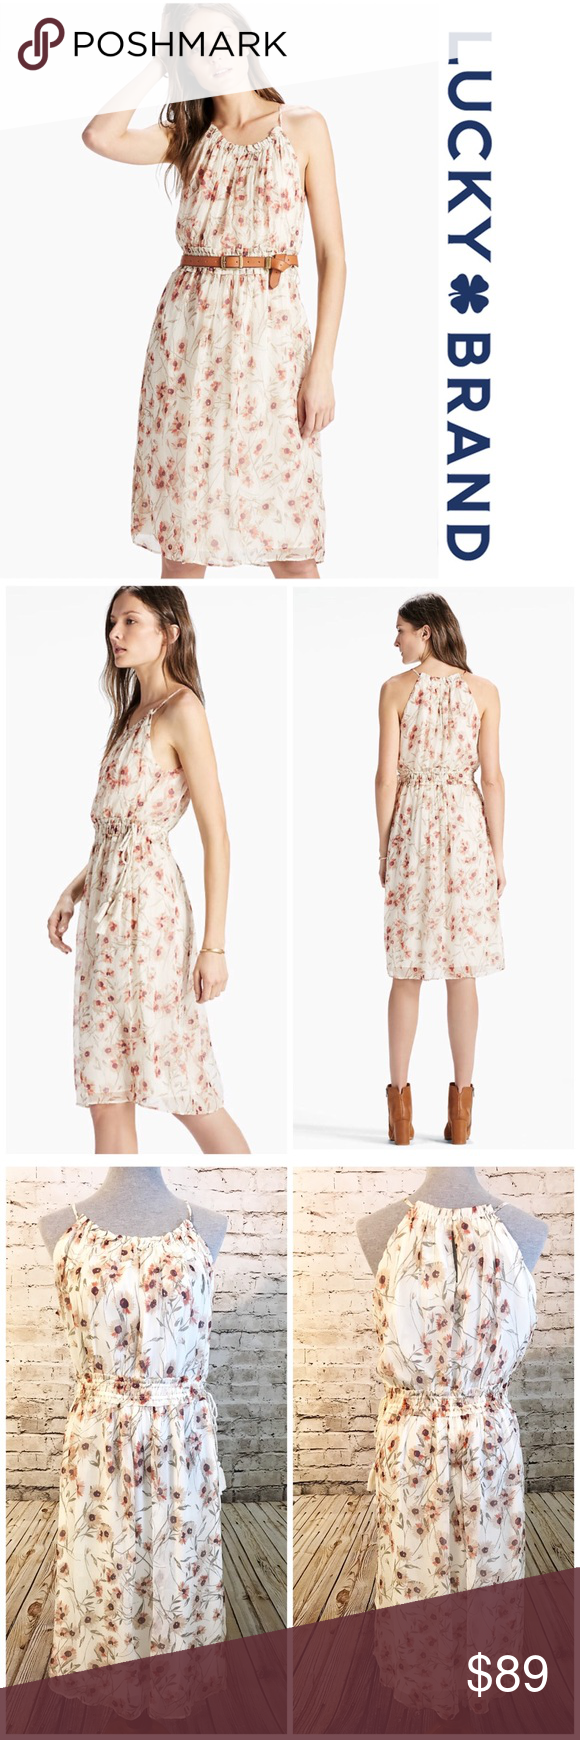 19194ac70499 Lucky Brand Carmen Neutral Chiffon Floral Dress L Lucky Brand Carmen Dress  - Neutral Enchant in modern florals and crinkled chiffon.